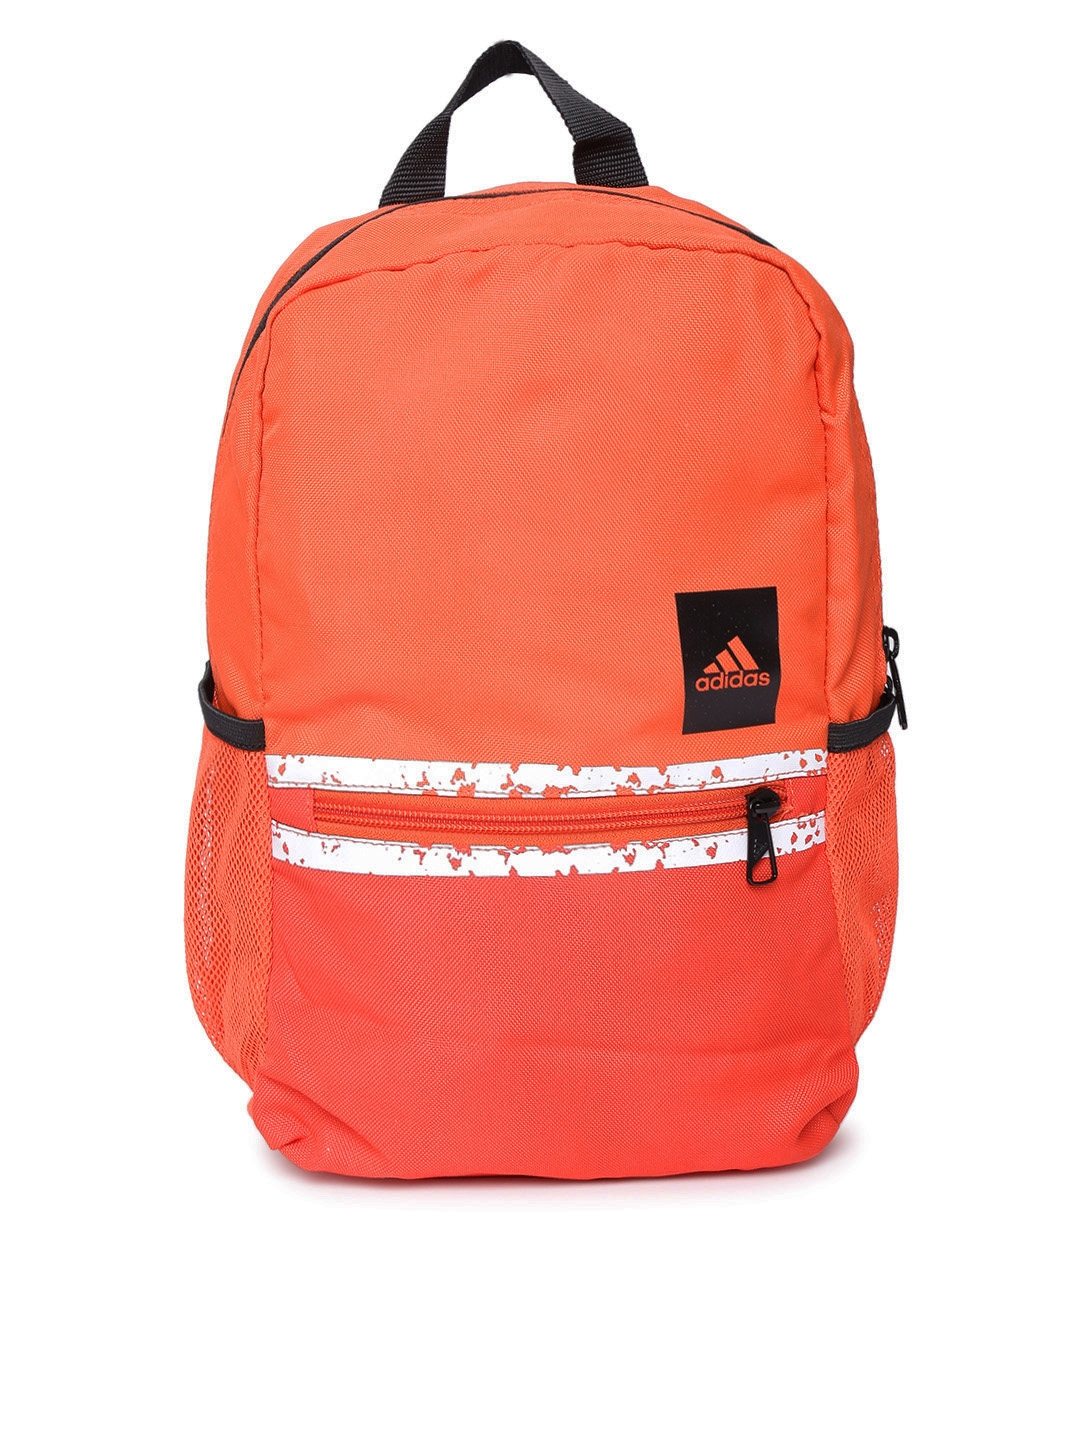 4d13ab99c13 Buy ADIDAS Unisex Orange Solid Classic Backpack - Backpacks for ...